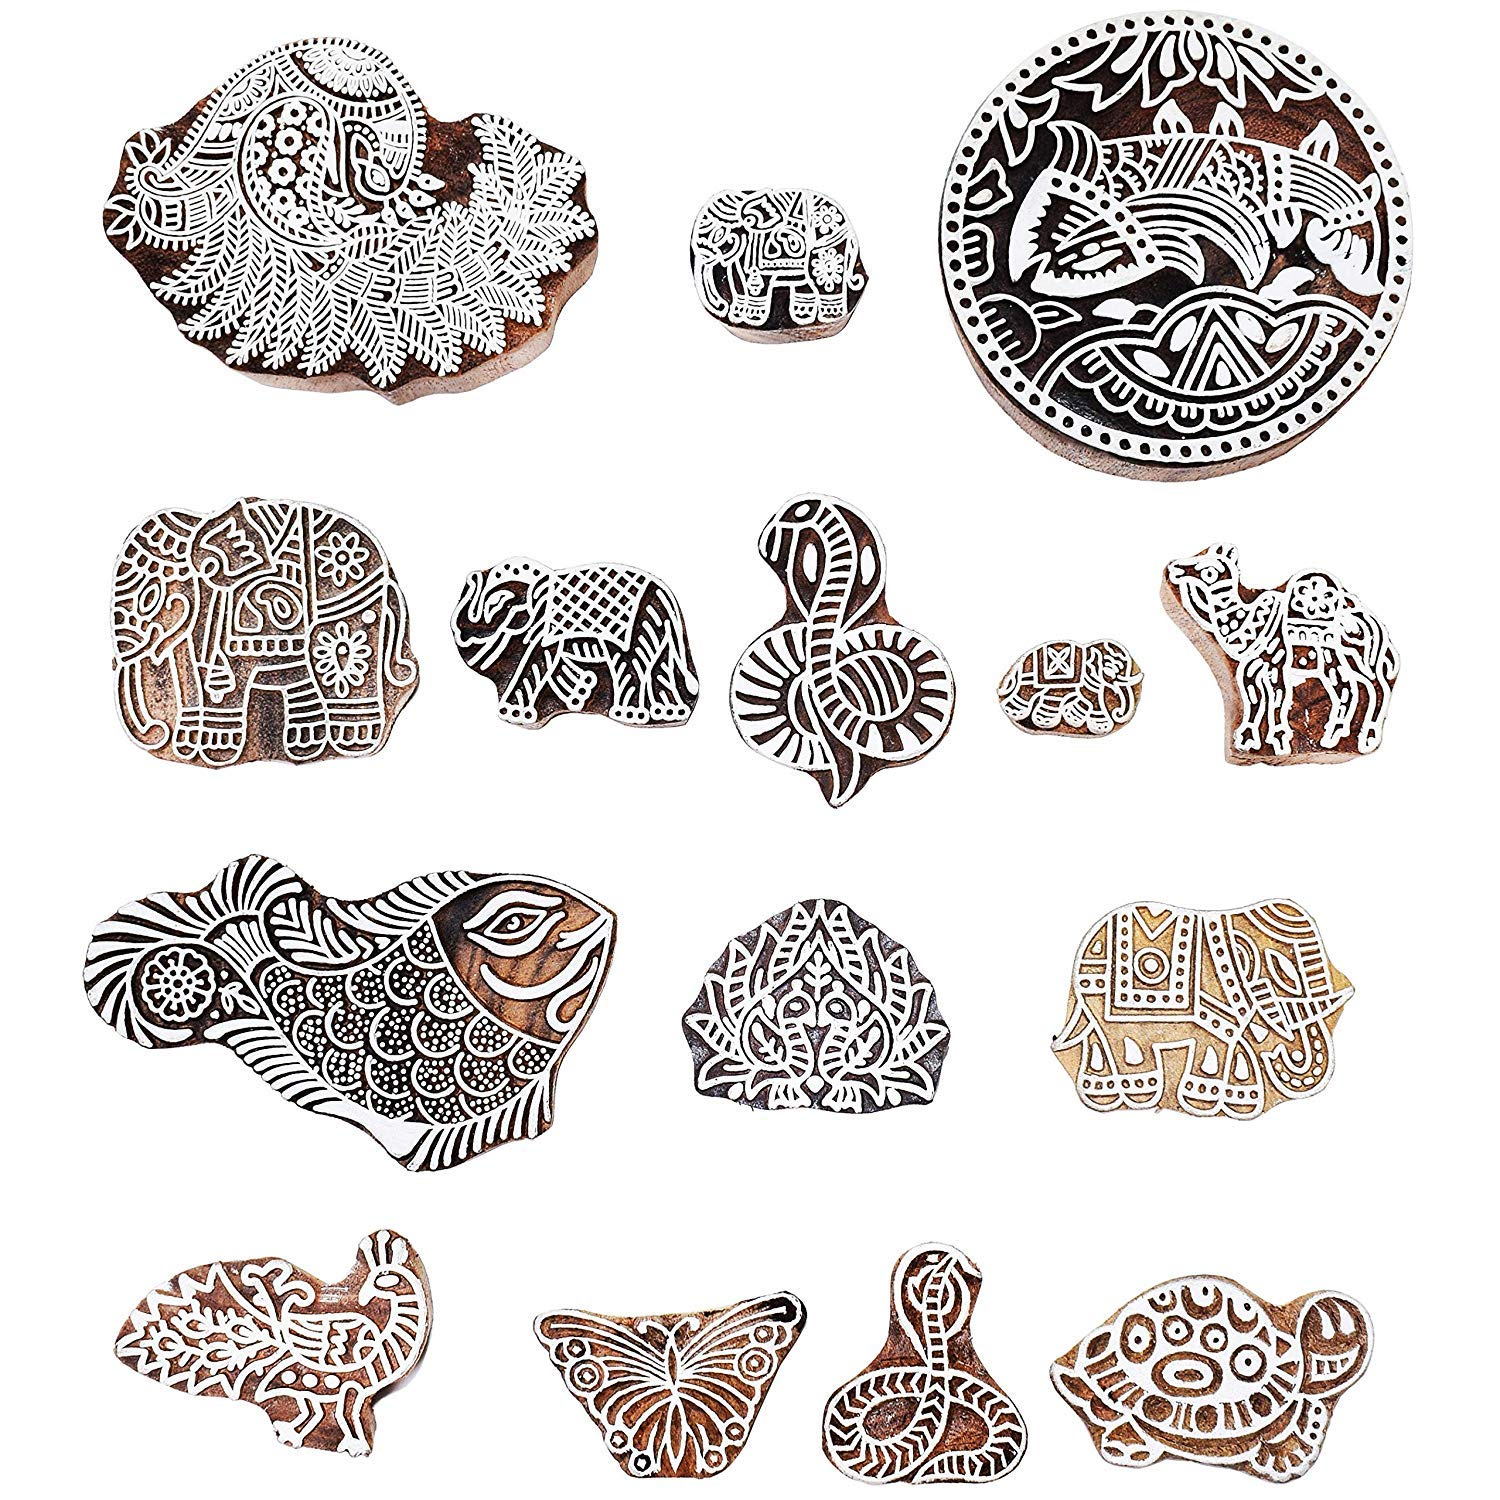 PARIJAT HANDICRAFT Printing Stamps Animal Design Wooden Blocks (Set of 37) Hand-Carved for Saree Border Making Pottery Crafts Textile Printing